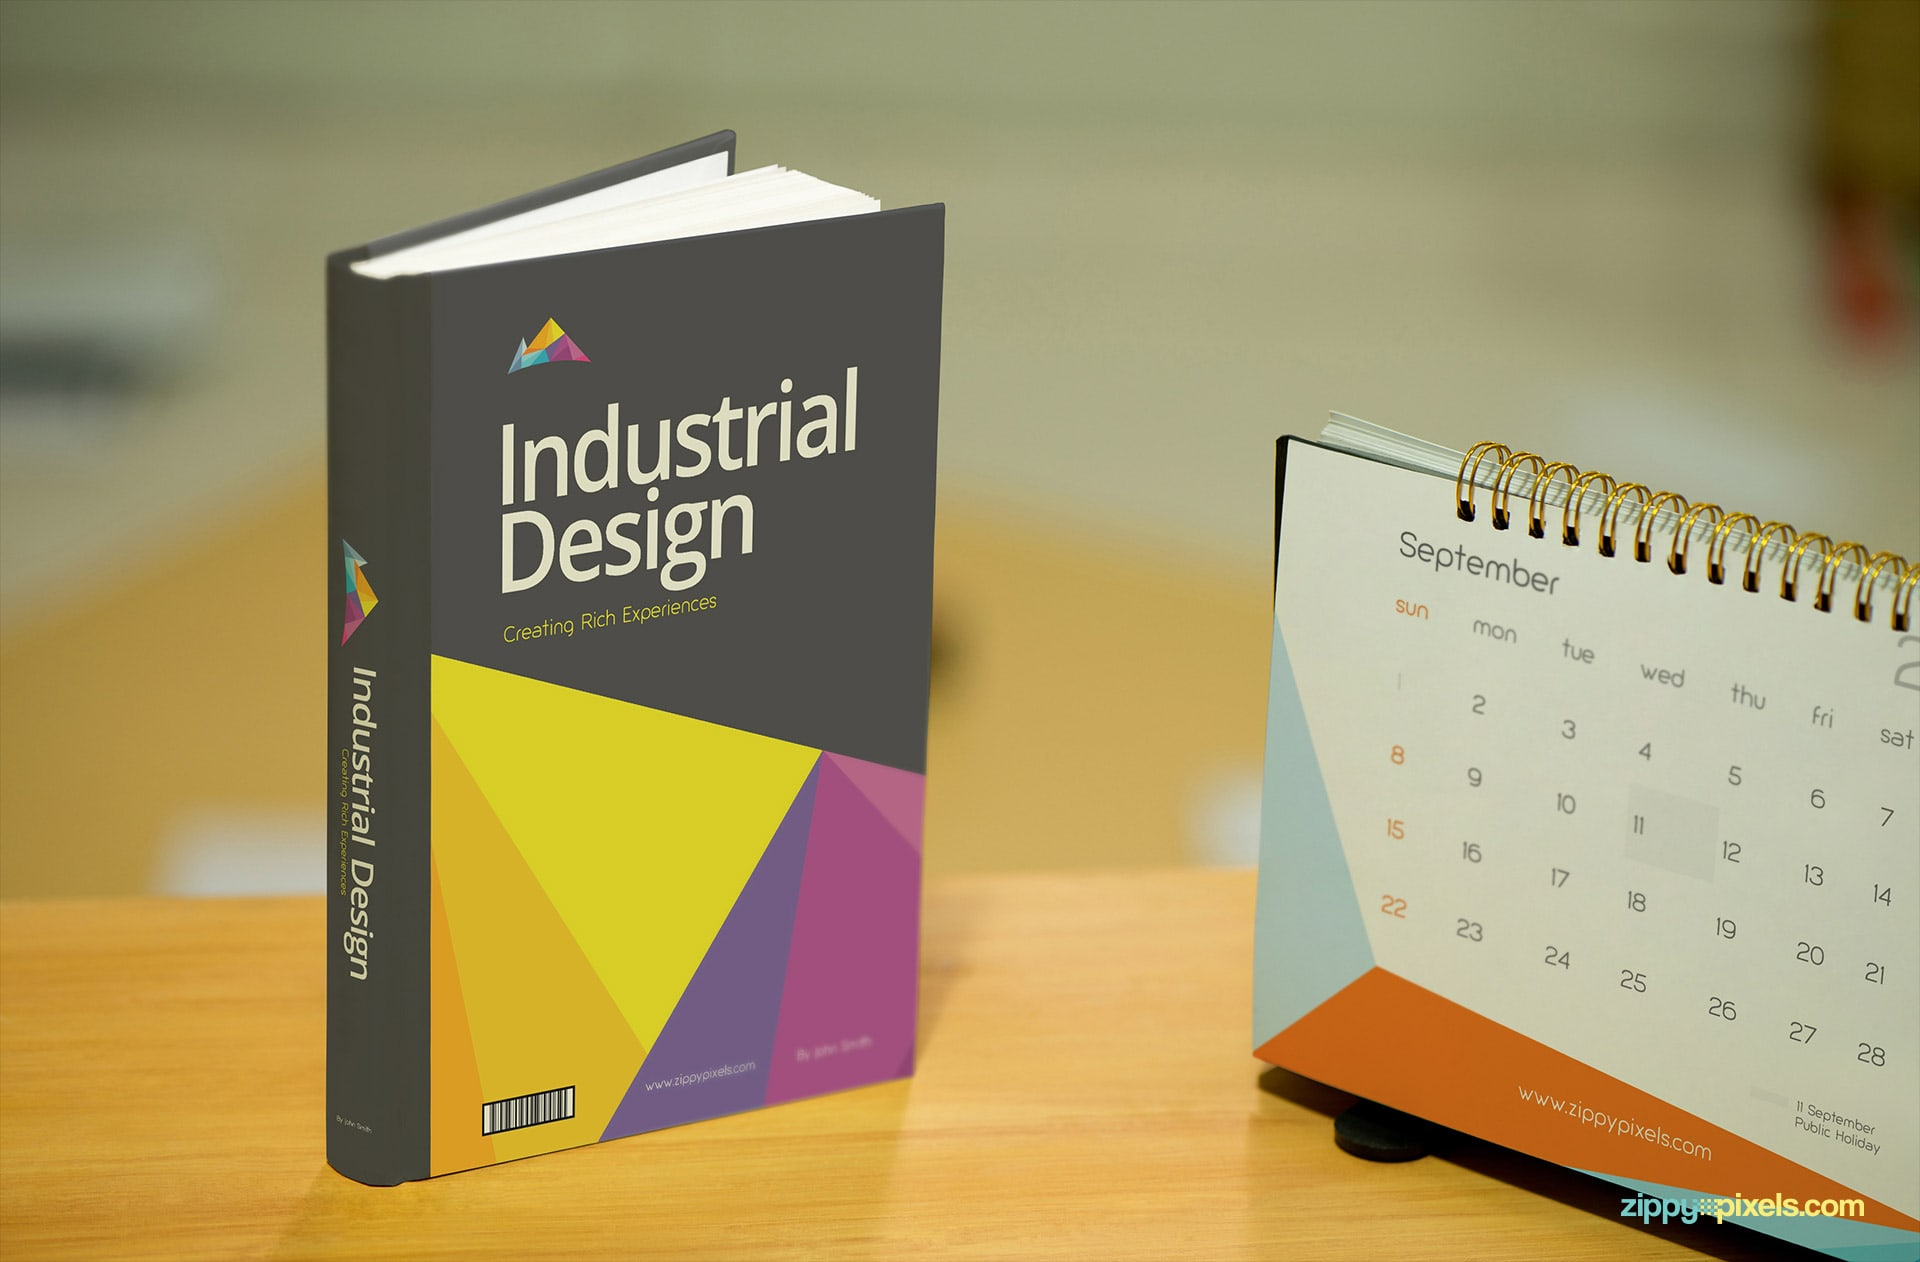 Hardcover Book Mockup on Table with Calendar